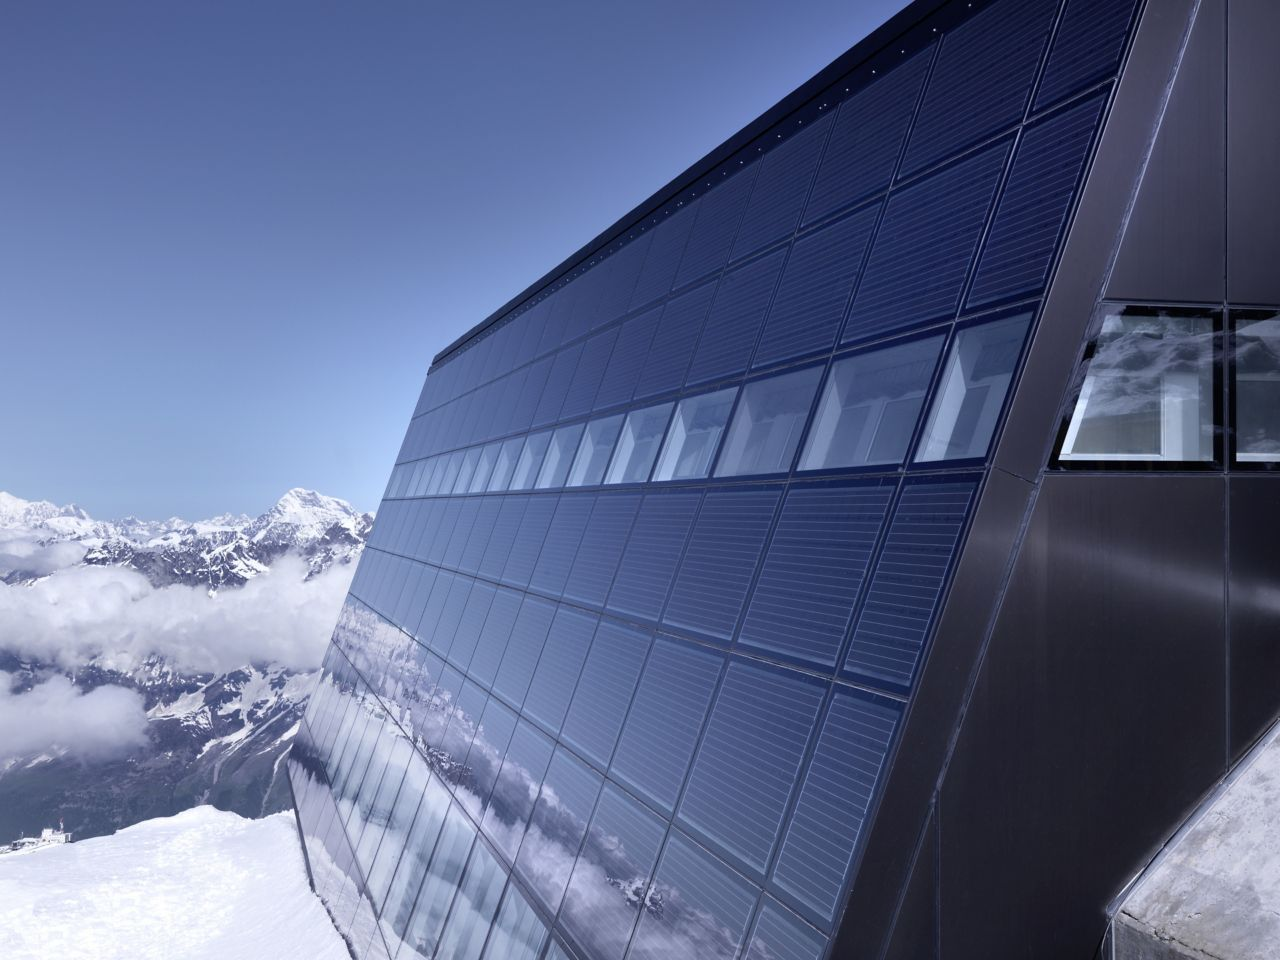 Sika Reference project matterhorn, glaciers paradise building integrated crystalline photovoltaic panel BIPV